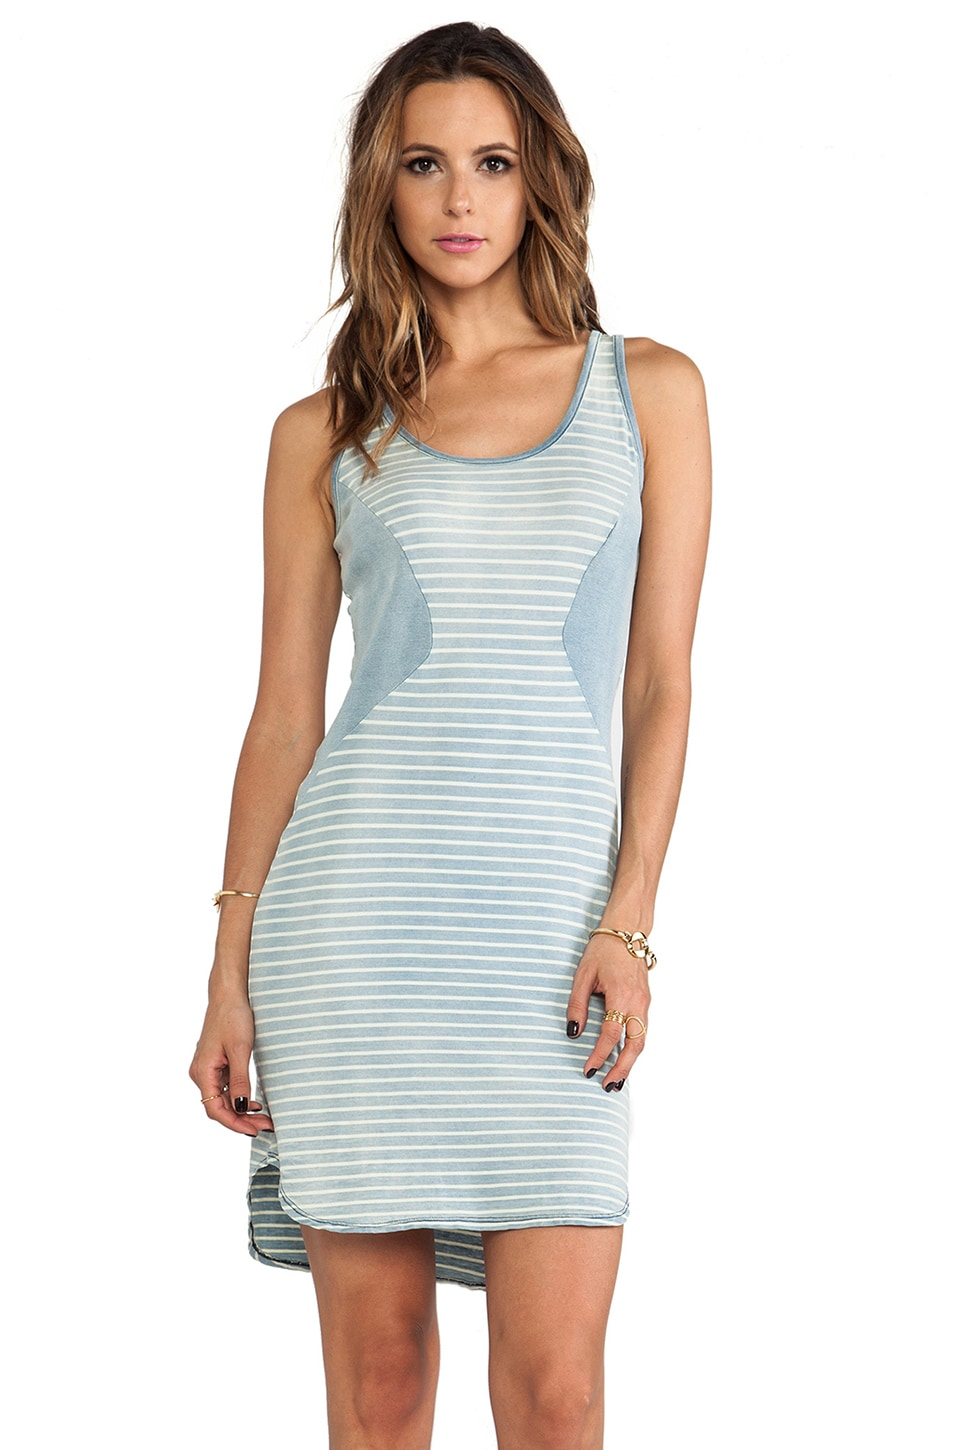 Kain Sea Dress in Light Wash Skinny Stripe